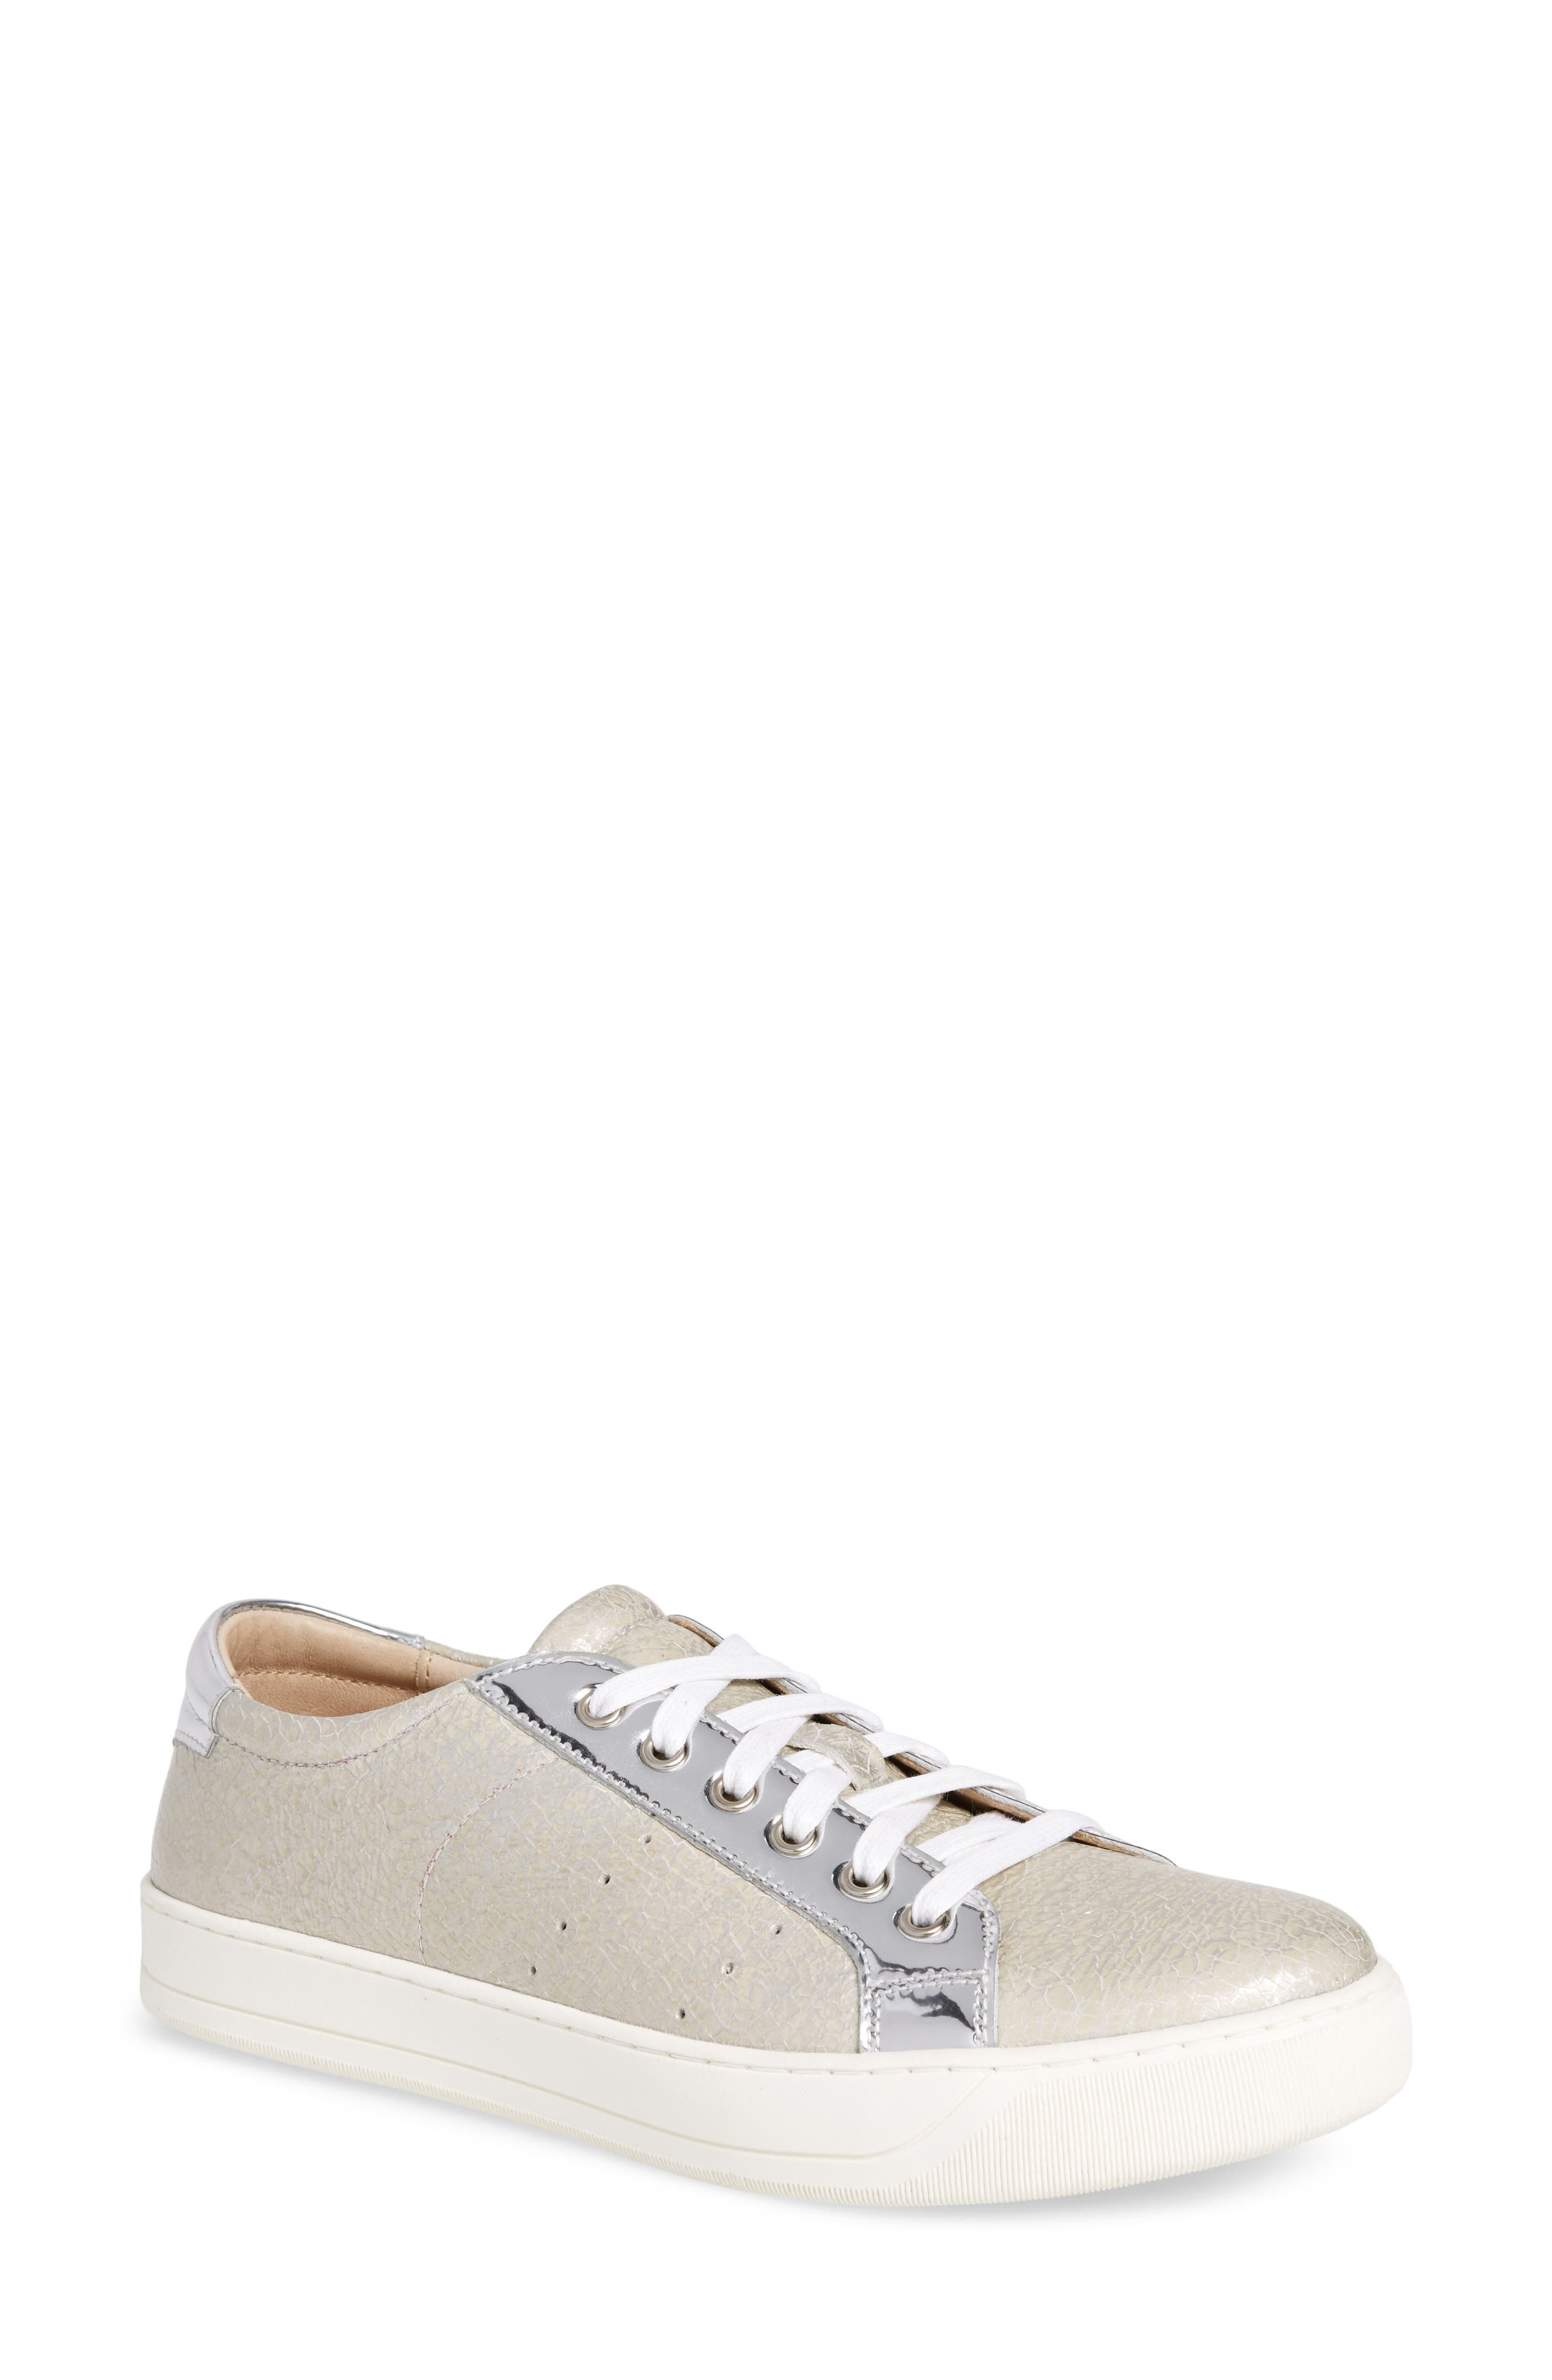 'Emerson' Sneaker,                             Main thumbnail 1, color,                             ICE CRACKLE LEATHER